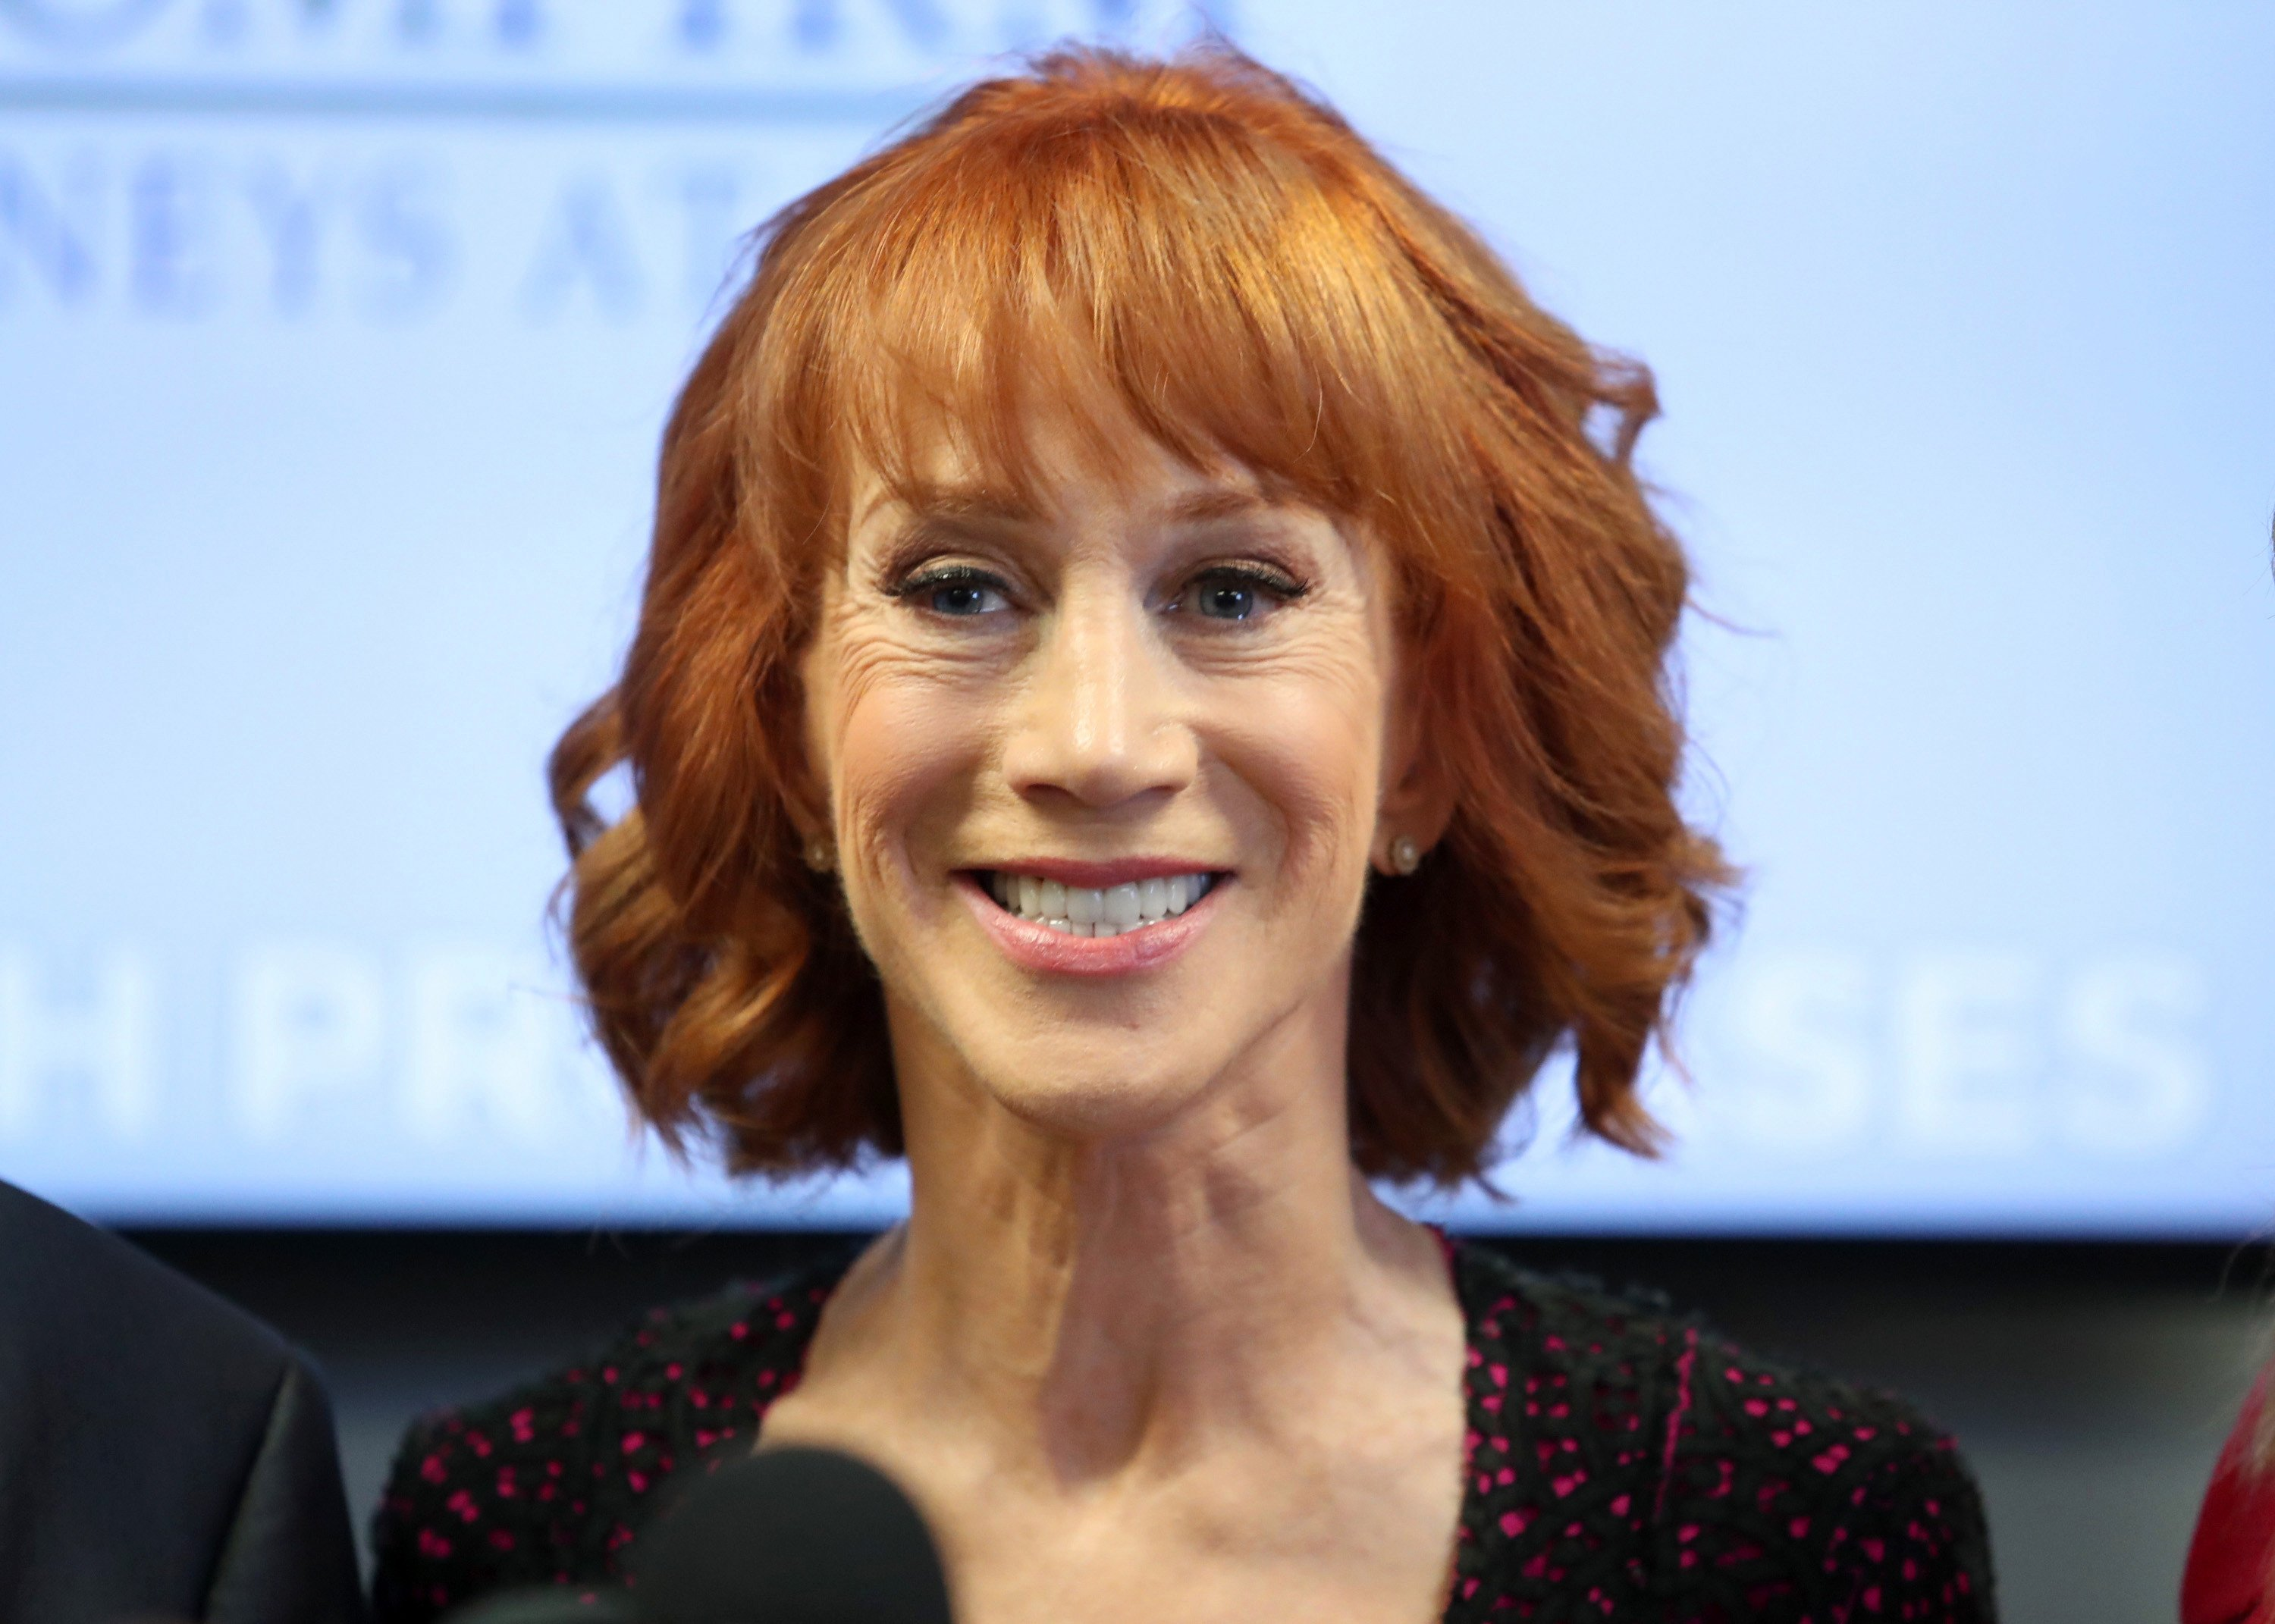 Kathy Griffin to appear on 'Real Time with Bill Maher'